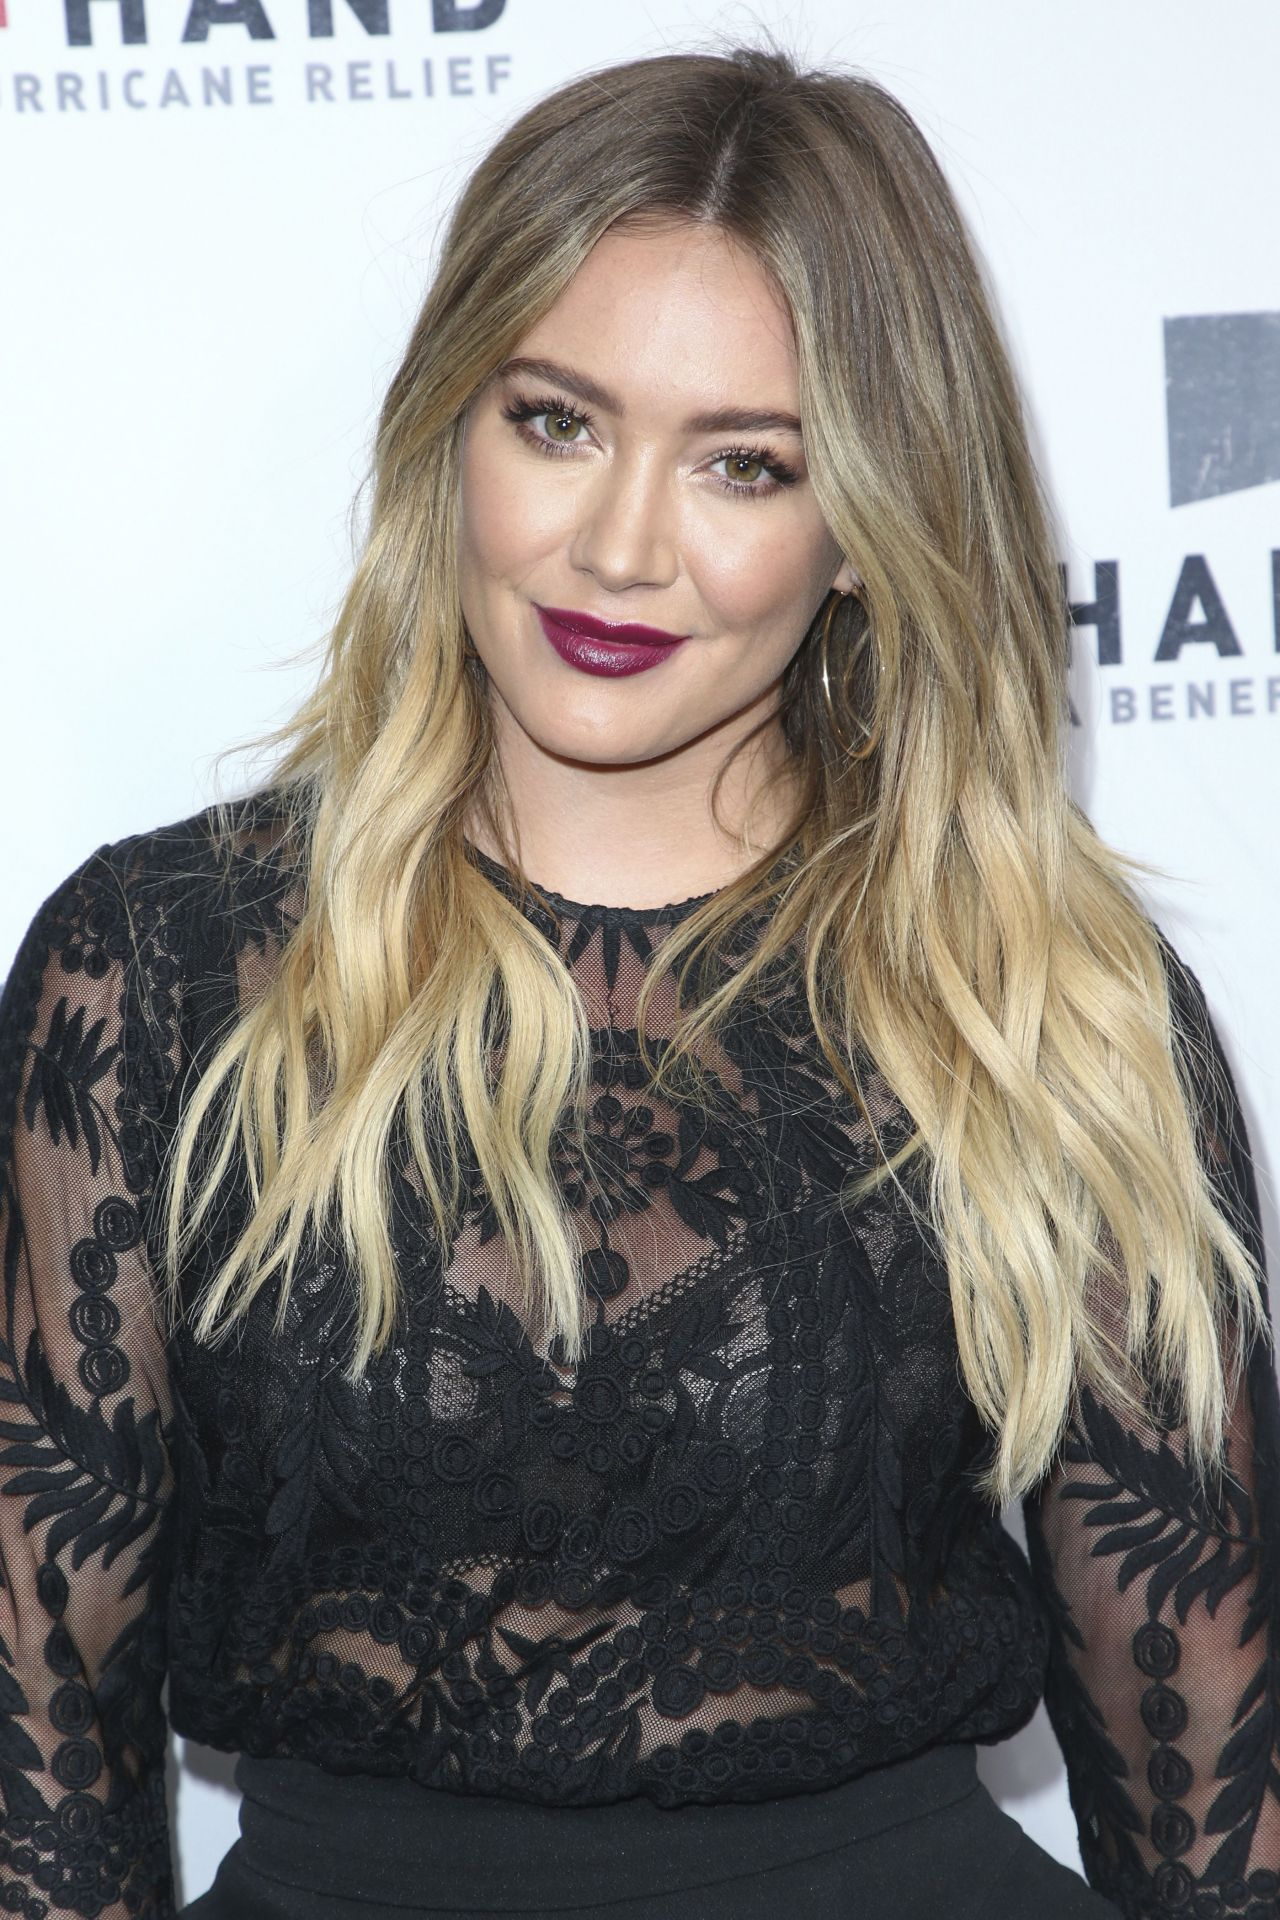 Hilary Duff - Hand in Hand: A Benefit for Hurricane Harvey ... Hilary Duff